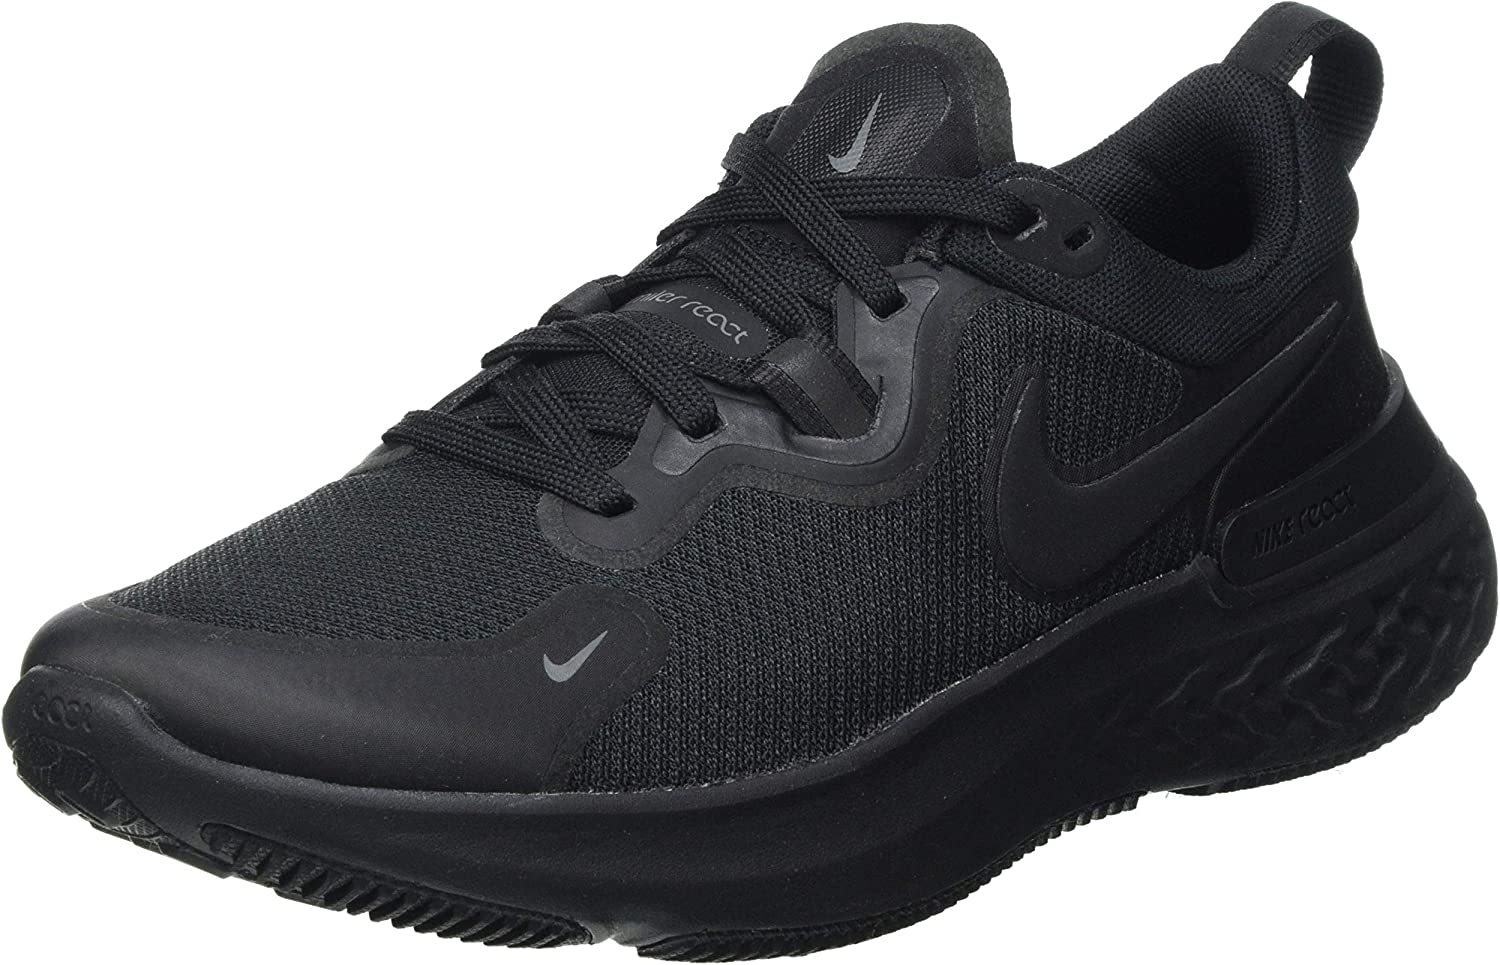 Nike Factory outlet Women's Gym Free Shipping New Sneaker